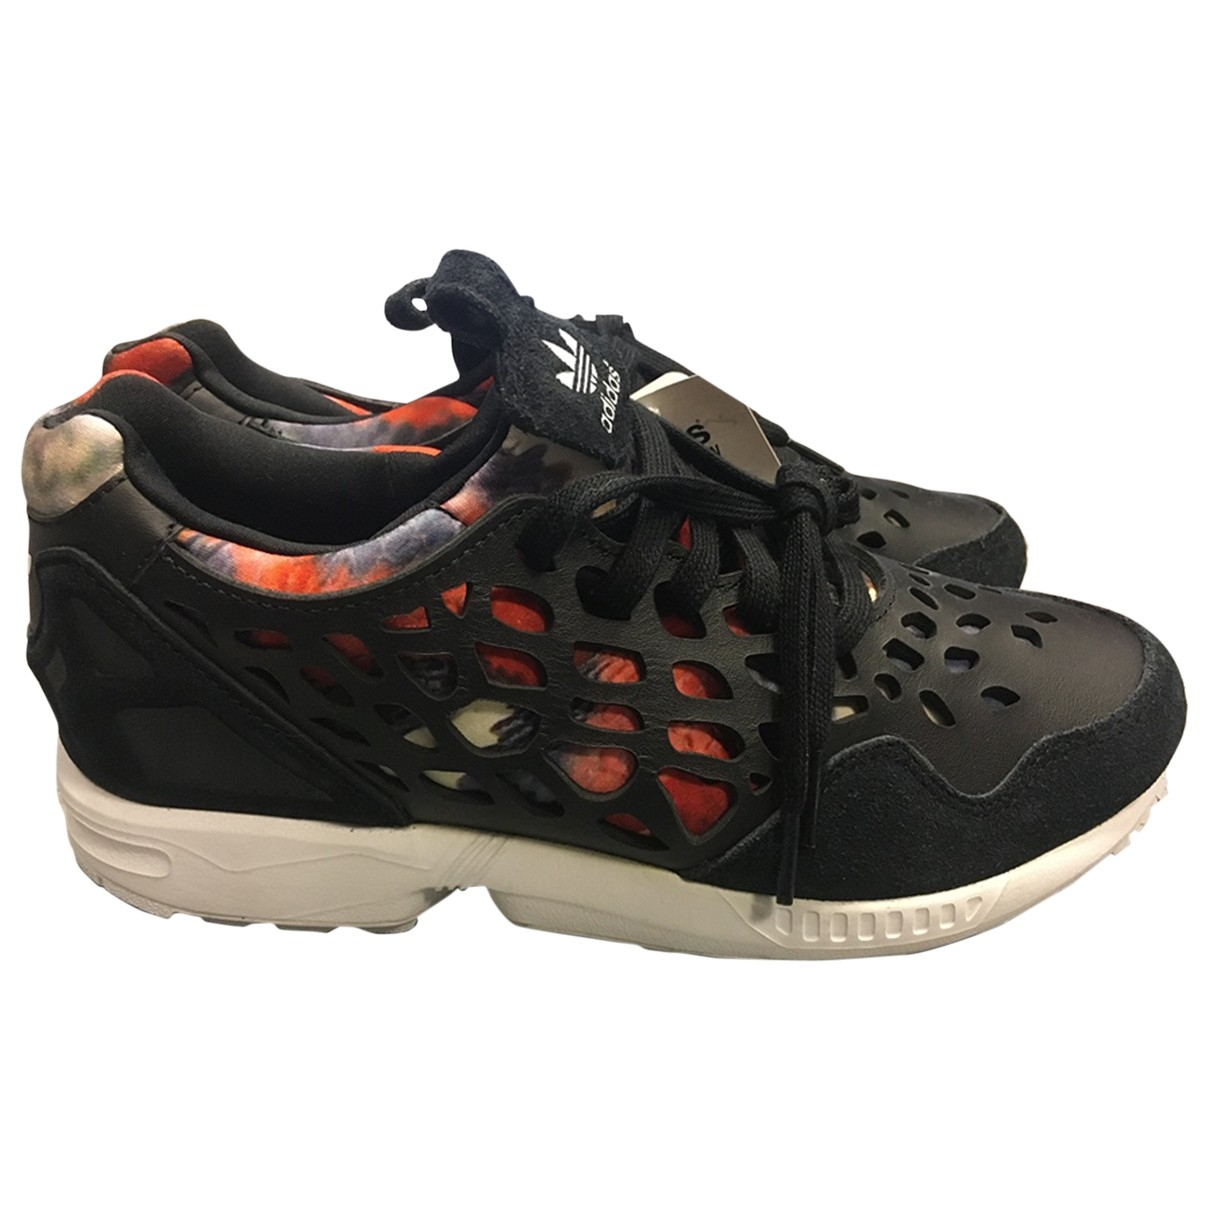 Adidas ZX Black Leather Trainers for Women 7 US